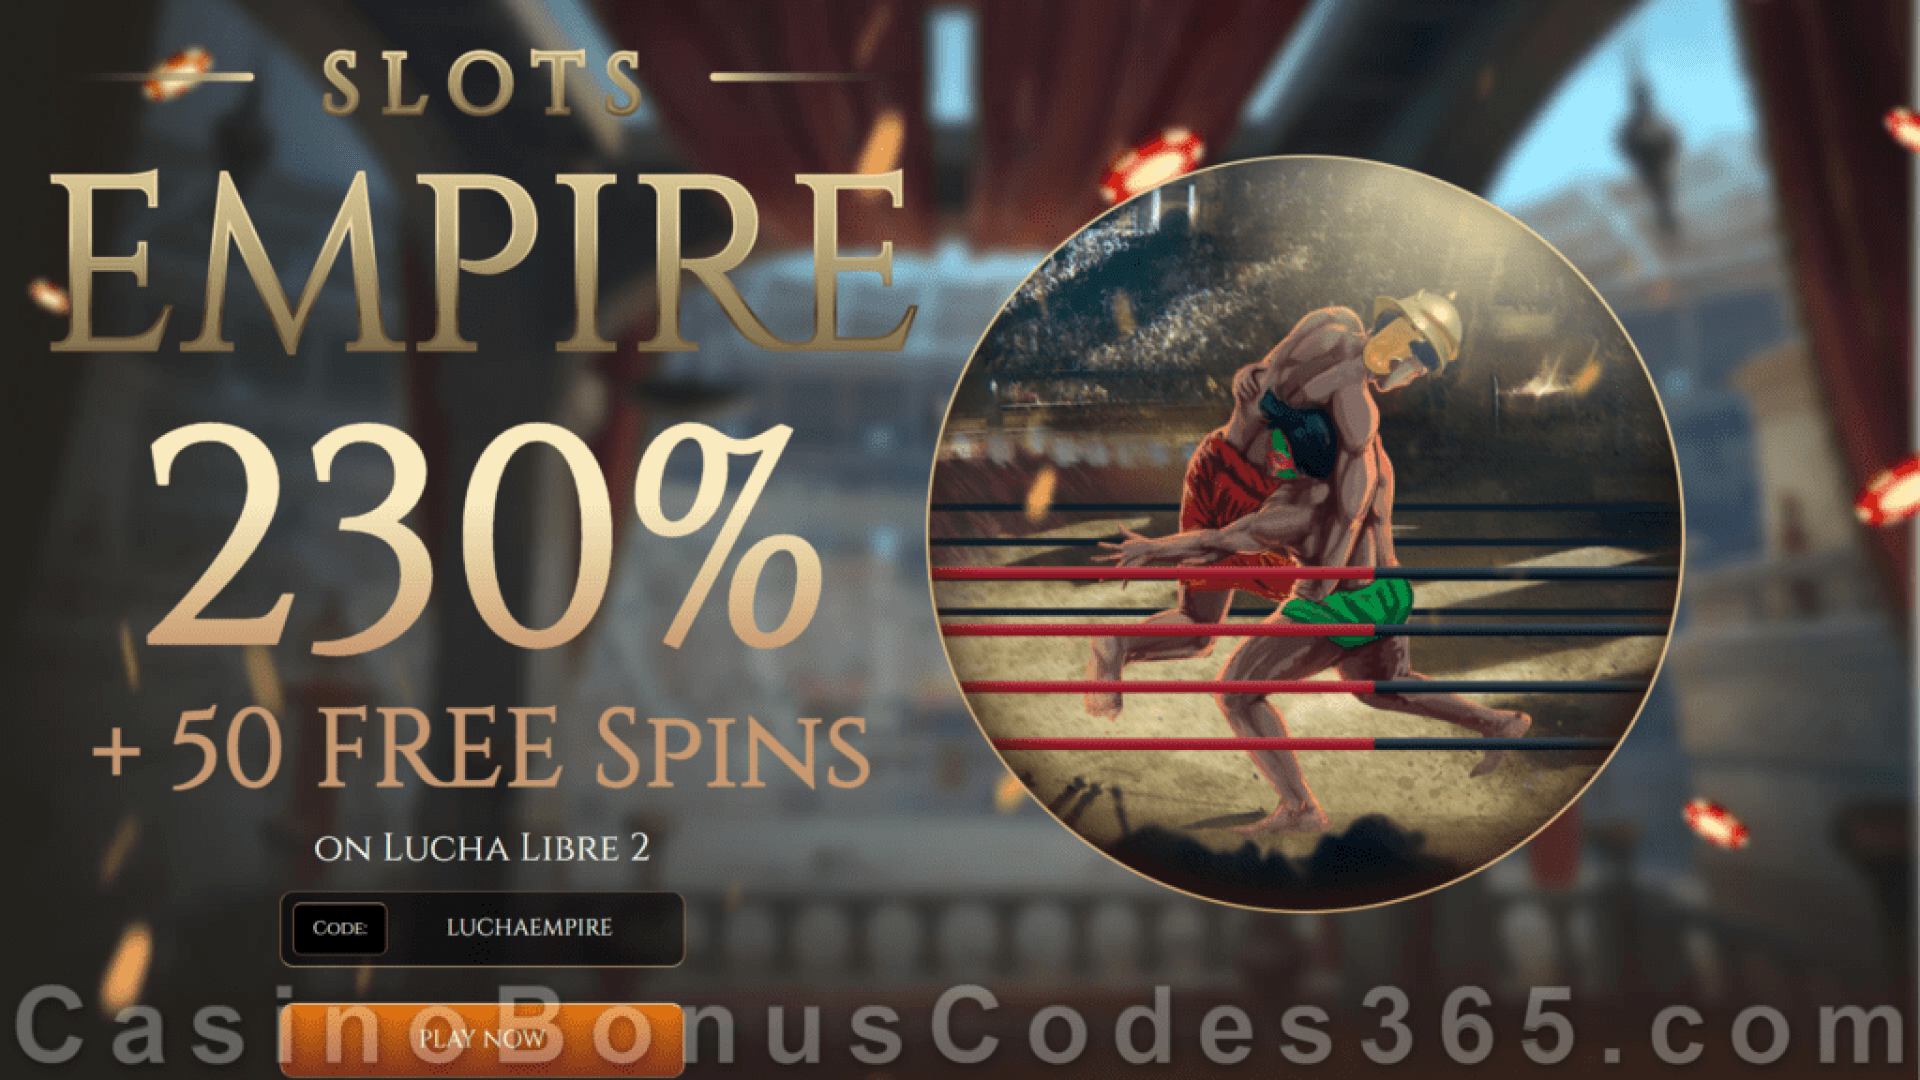 Slots Empire 230% Match Bonus plus 50 FREE RTG Lucha Libre 2 Spins Special Sign Up Offer